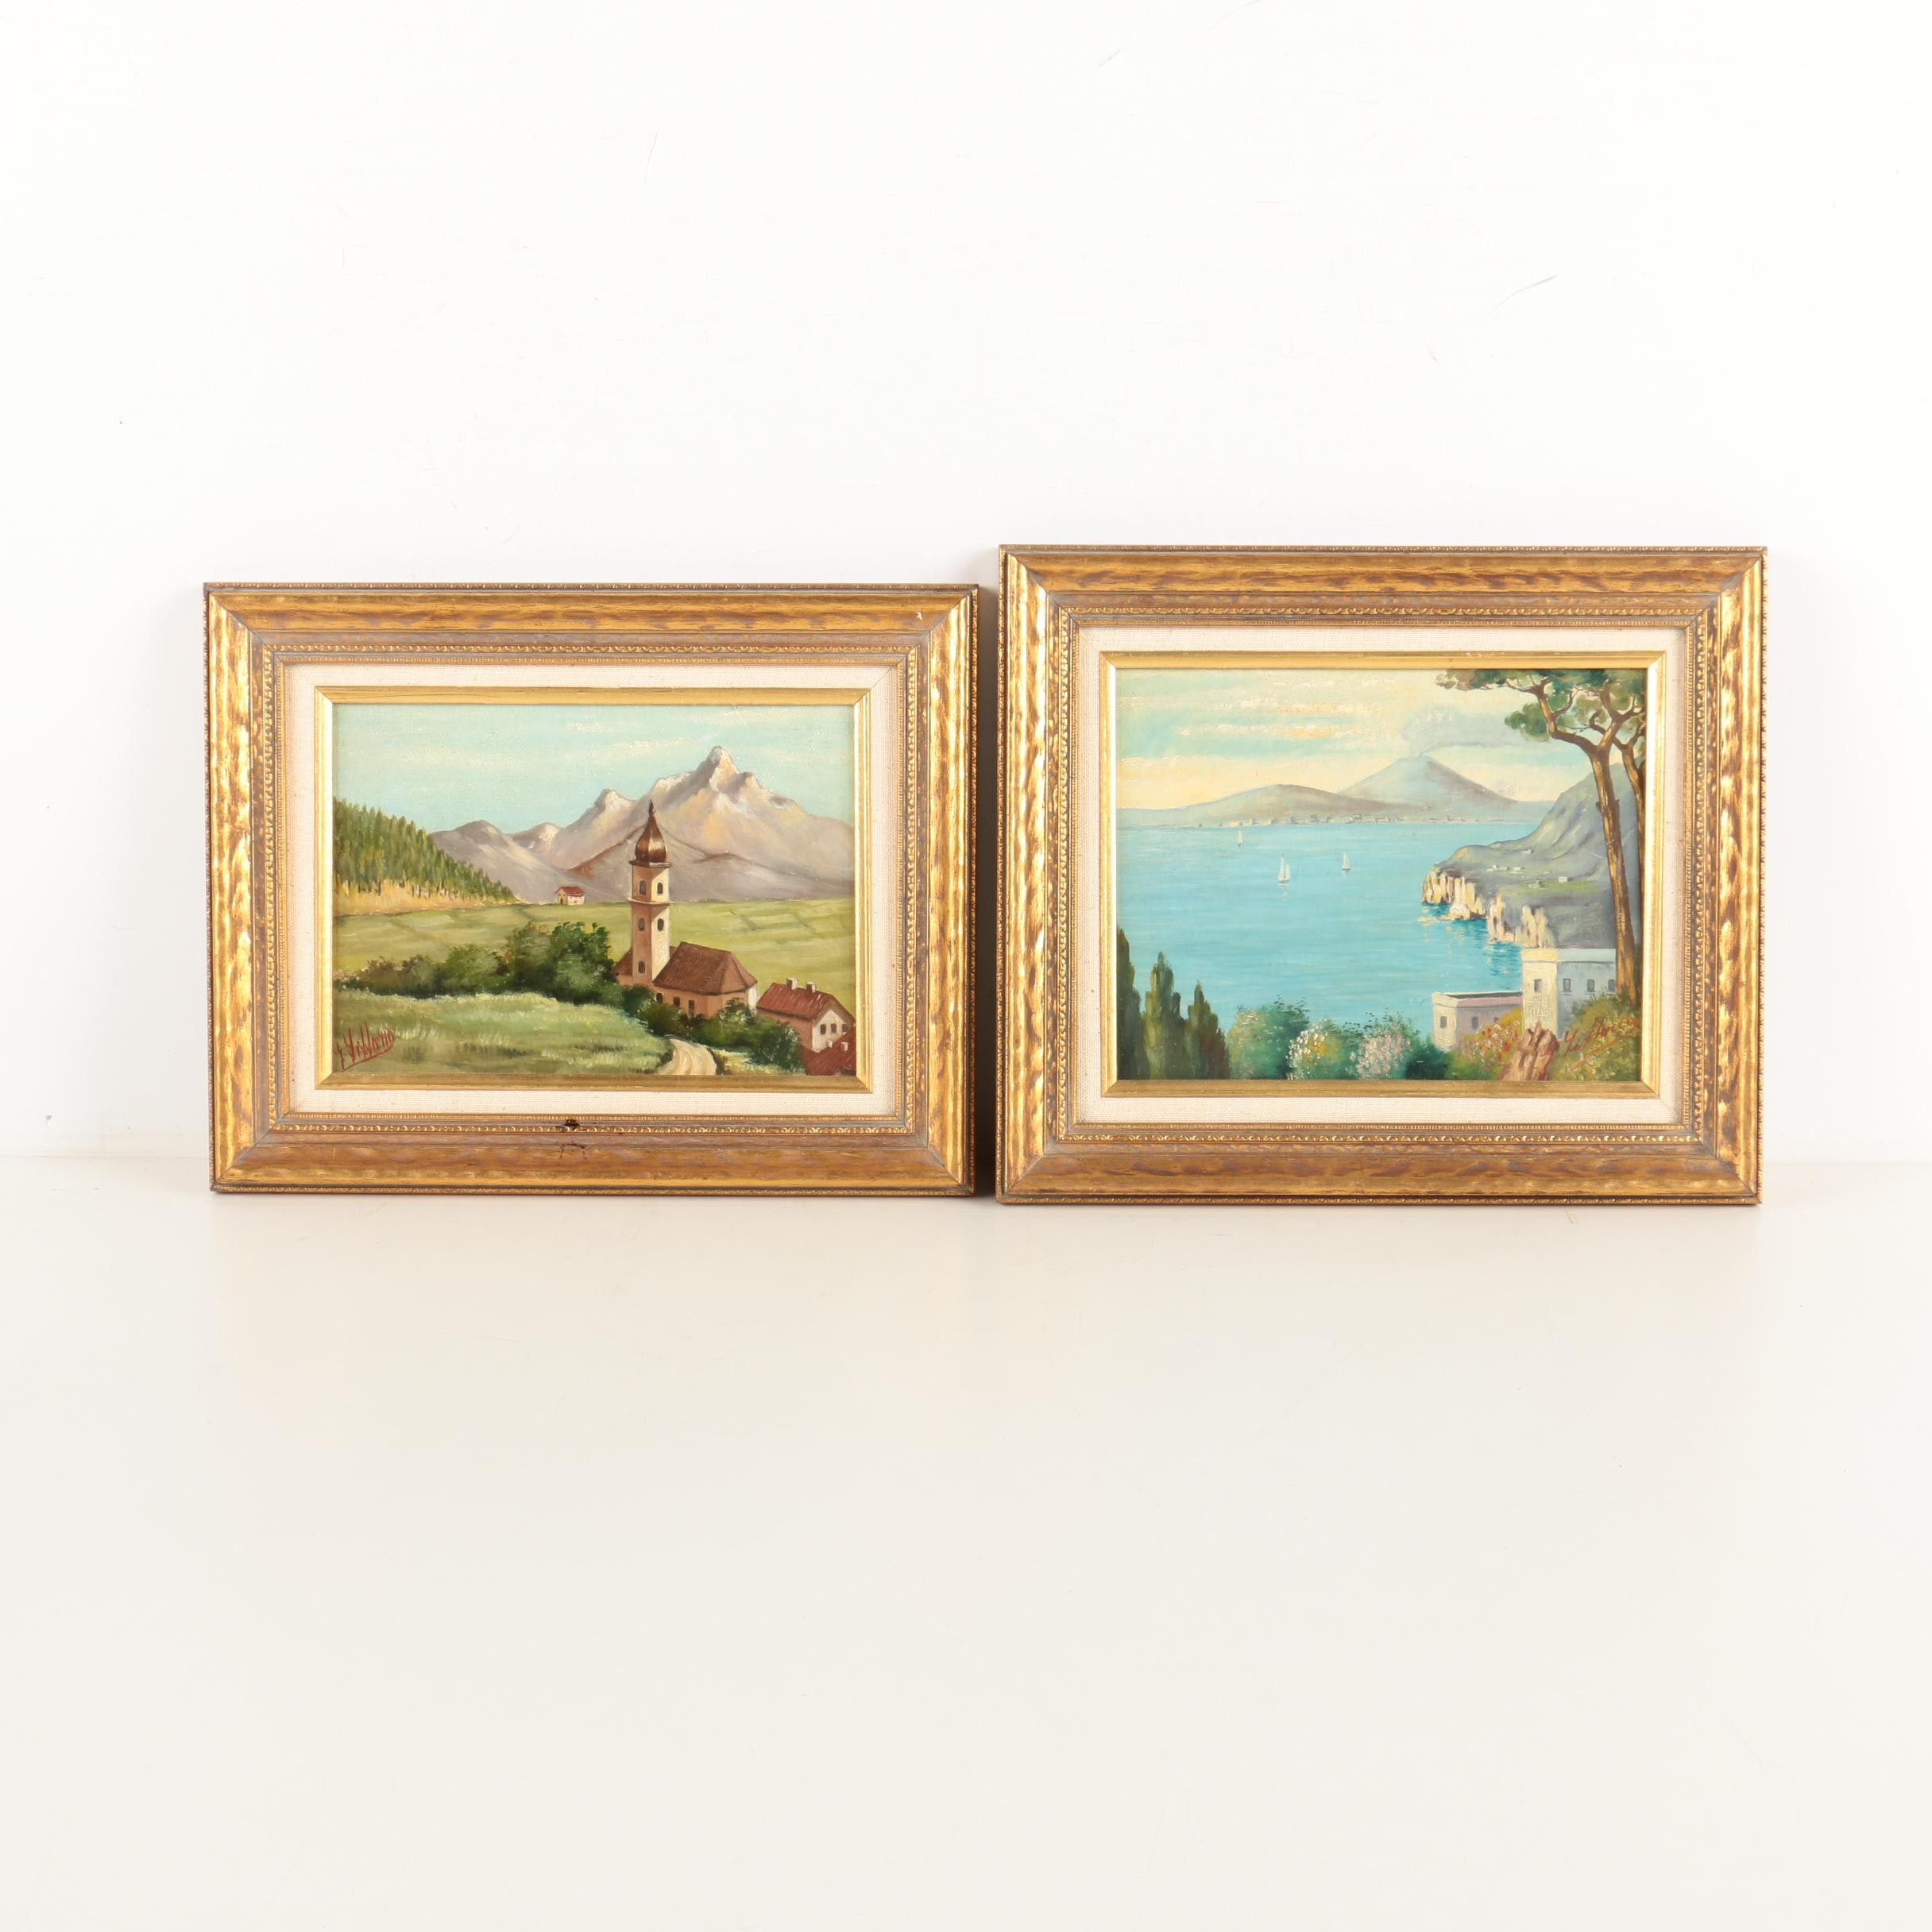 Oil Paintings on Canvas of Mountain Views